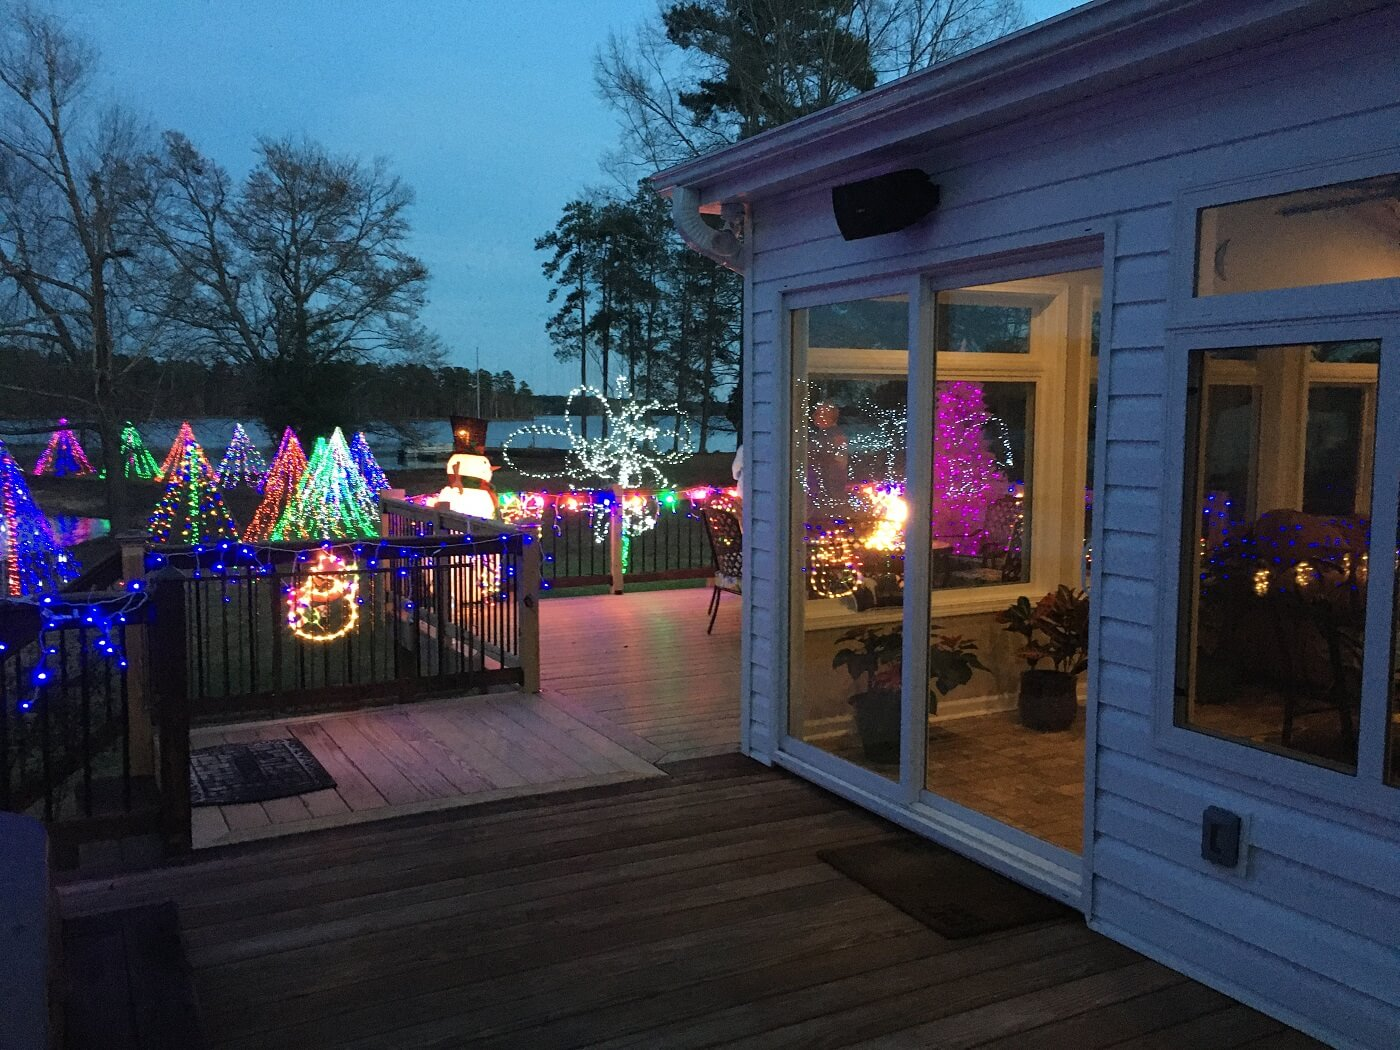 Wood deck with Christmas decors